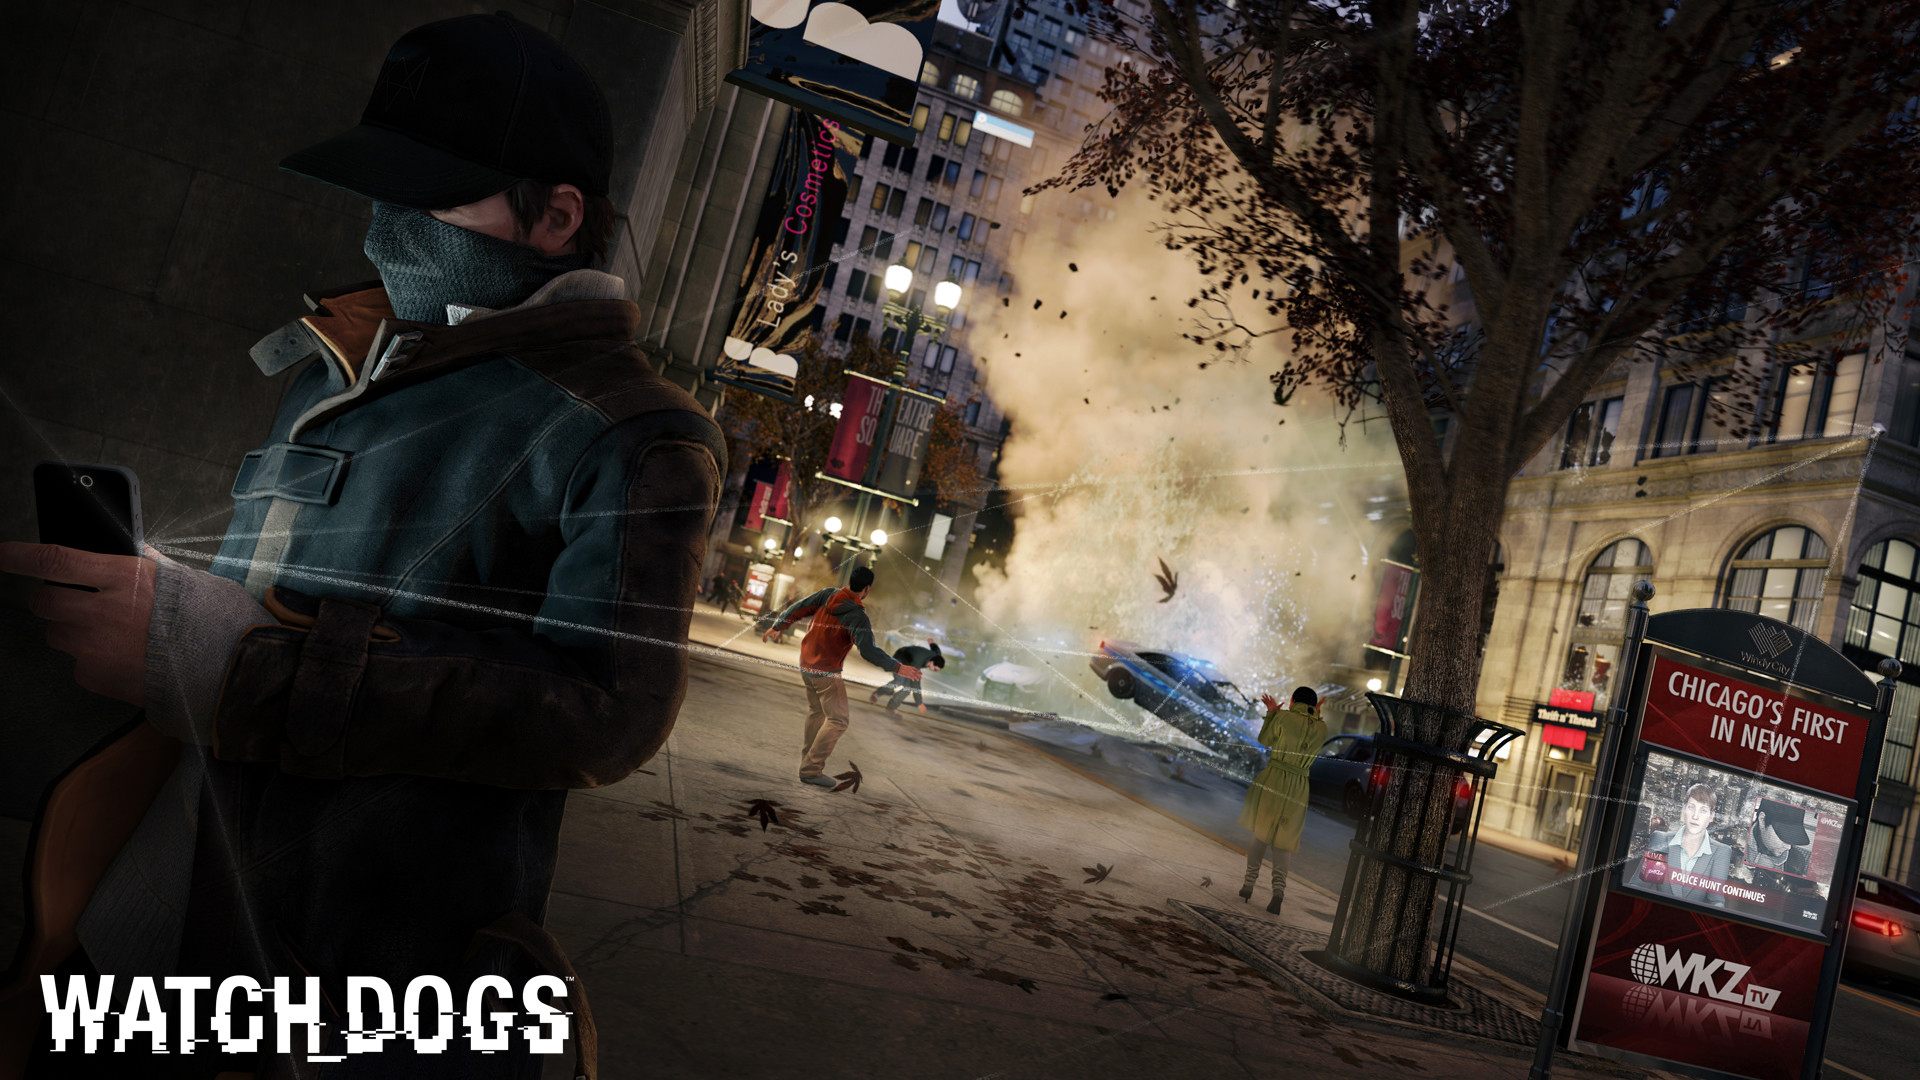 Watch dogs game 21 wallpaper hd watch dogs video game aiden pearce height voltagebd Images